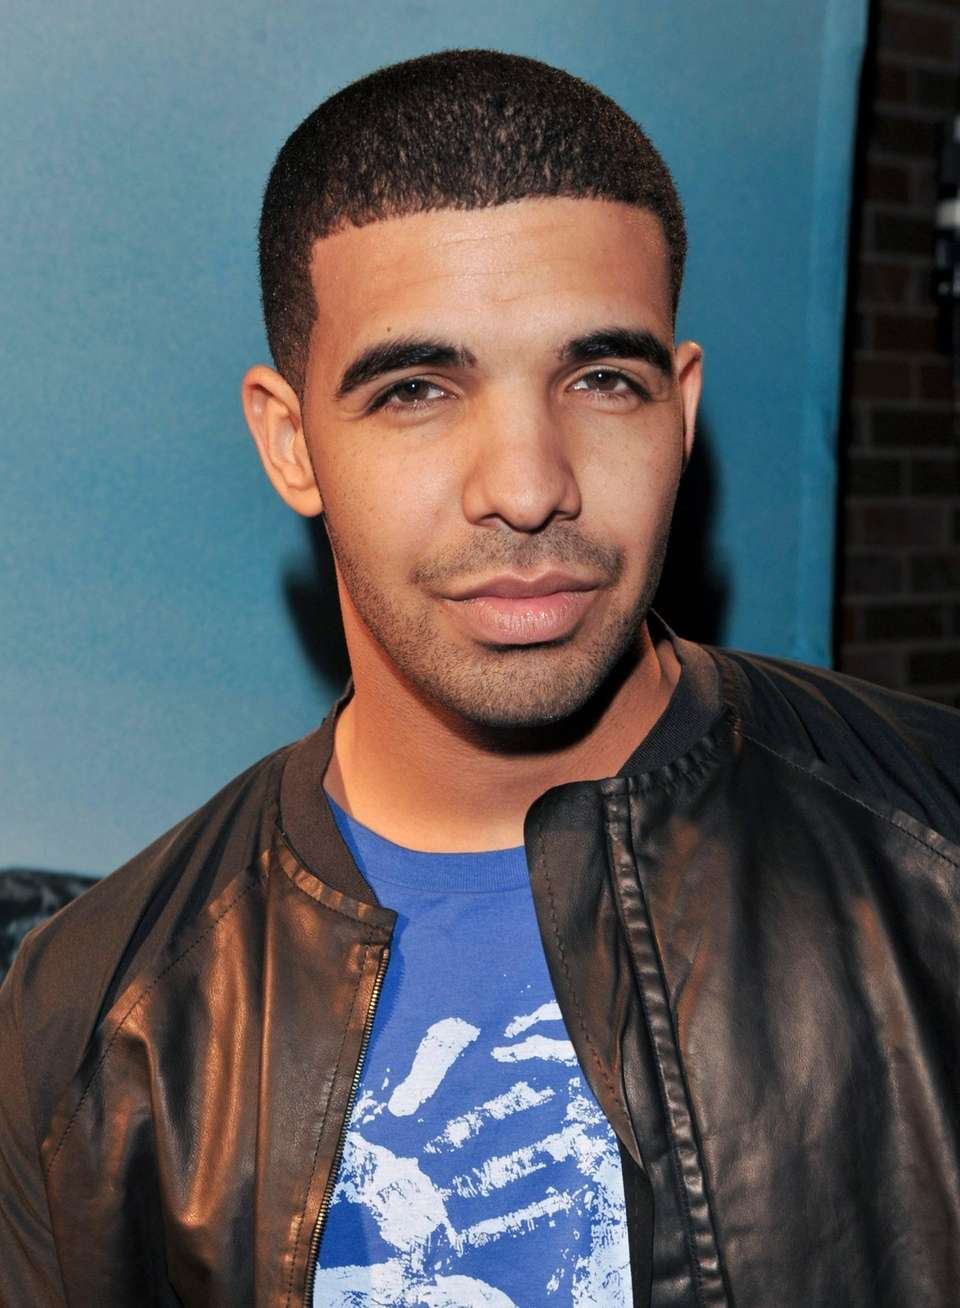 Stage name: Drake Birth name: Aubrey Drake Graham